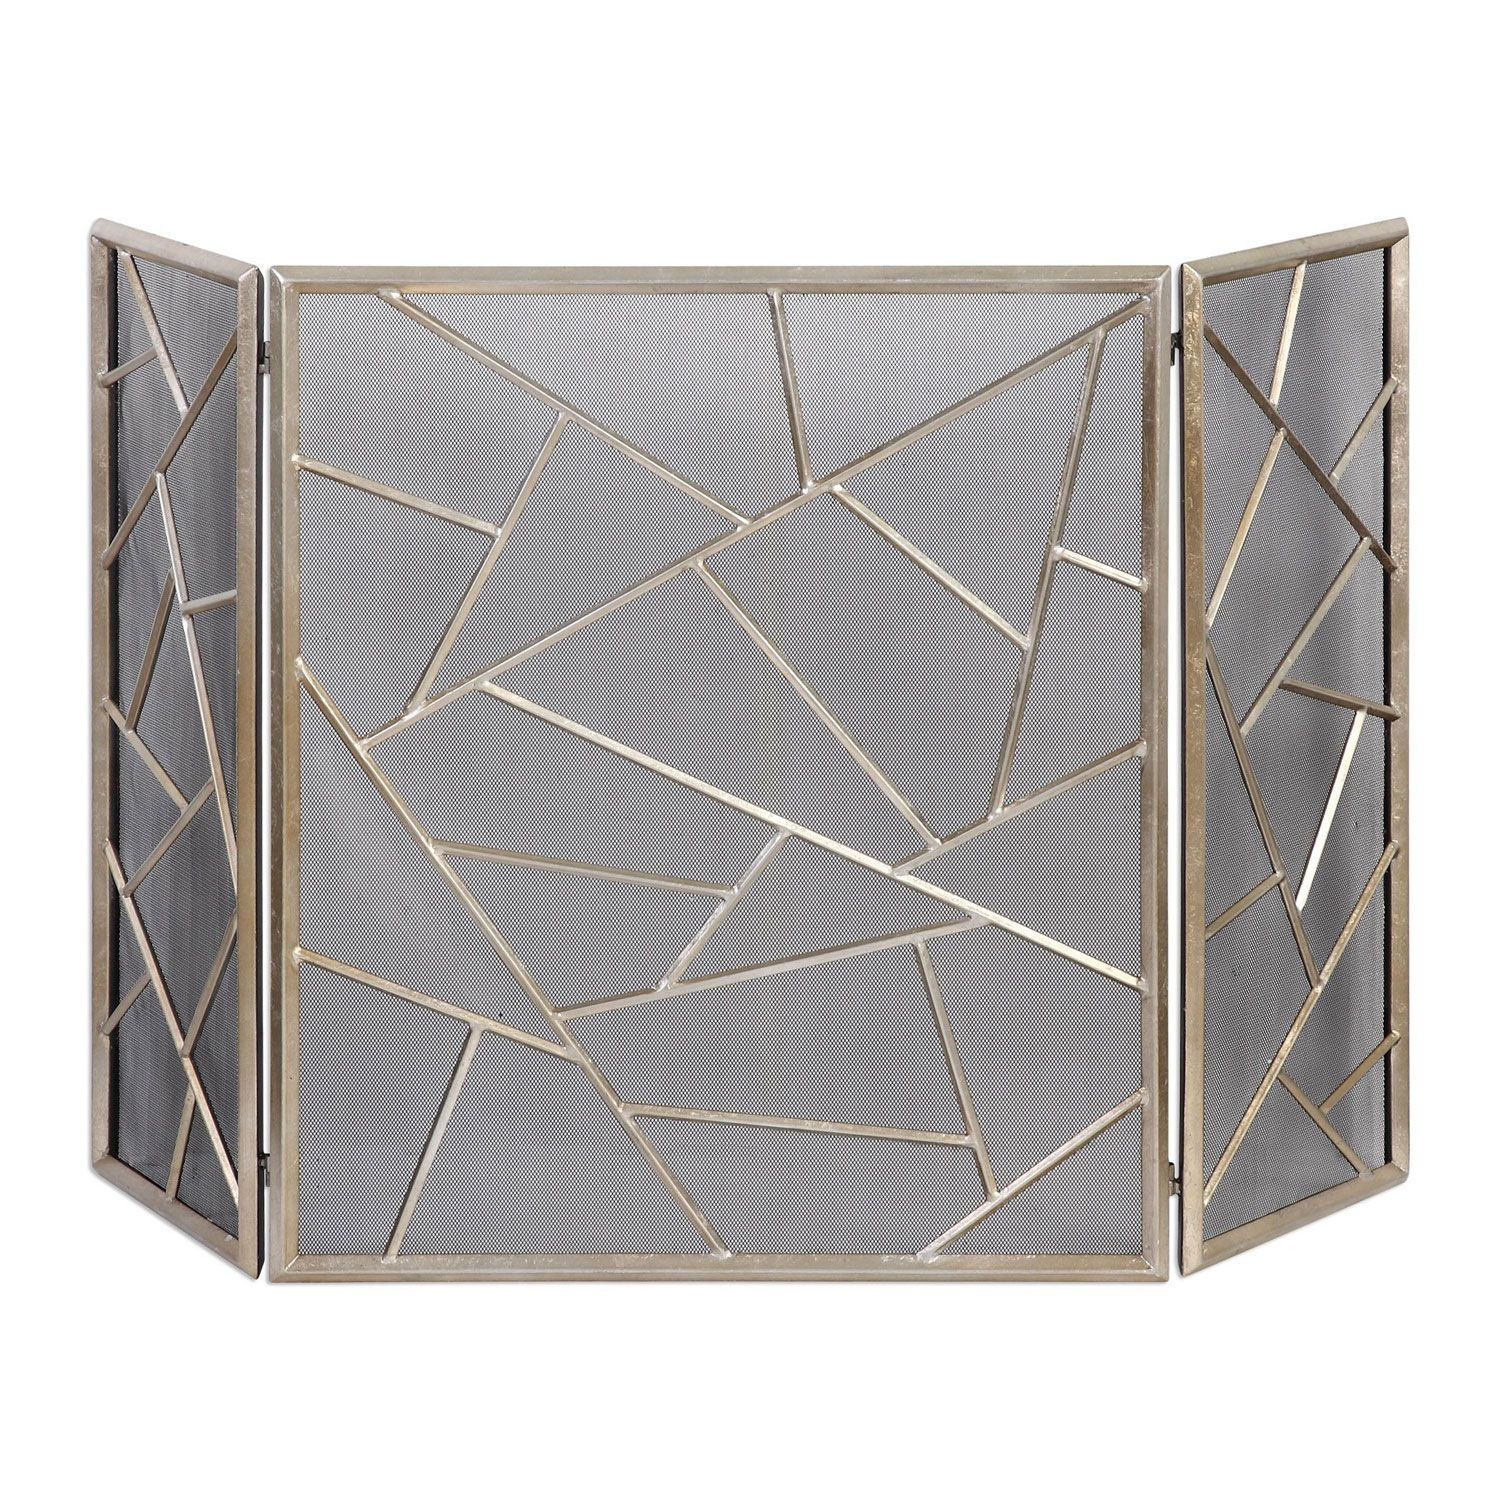 Armino Antique Silver Fireplace Screen Uttermost Screens Fireplace Accessories Home Decor